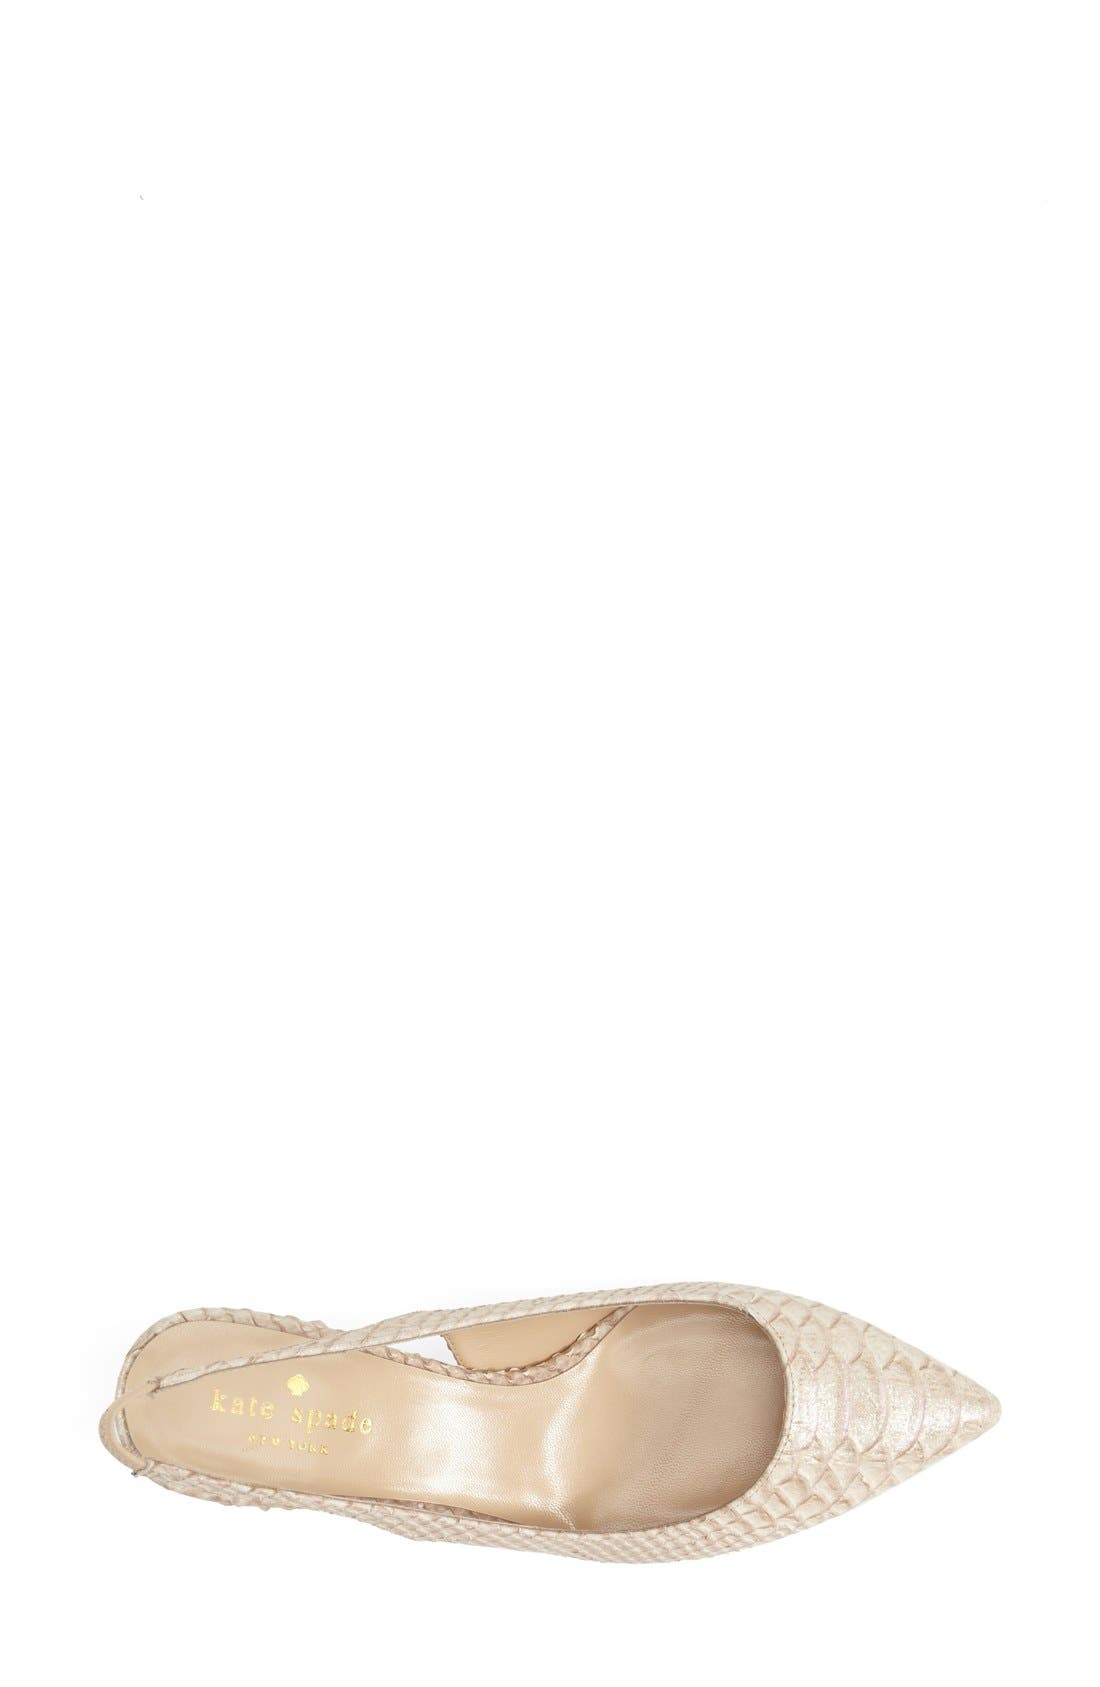 Alternate Image 3  - kate spade new york 'saia' slingback pump